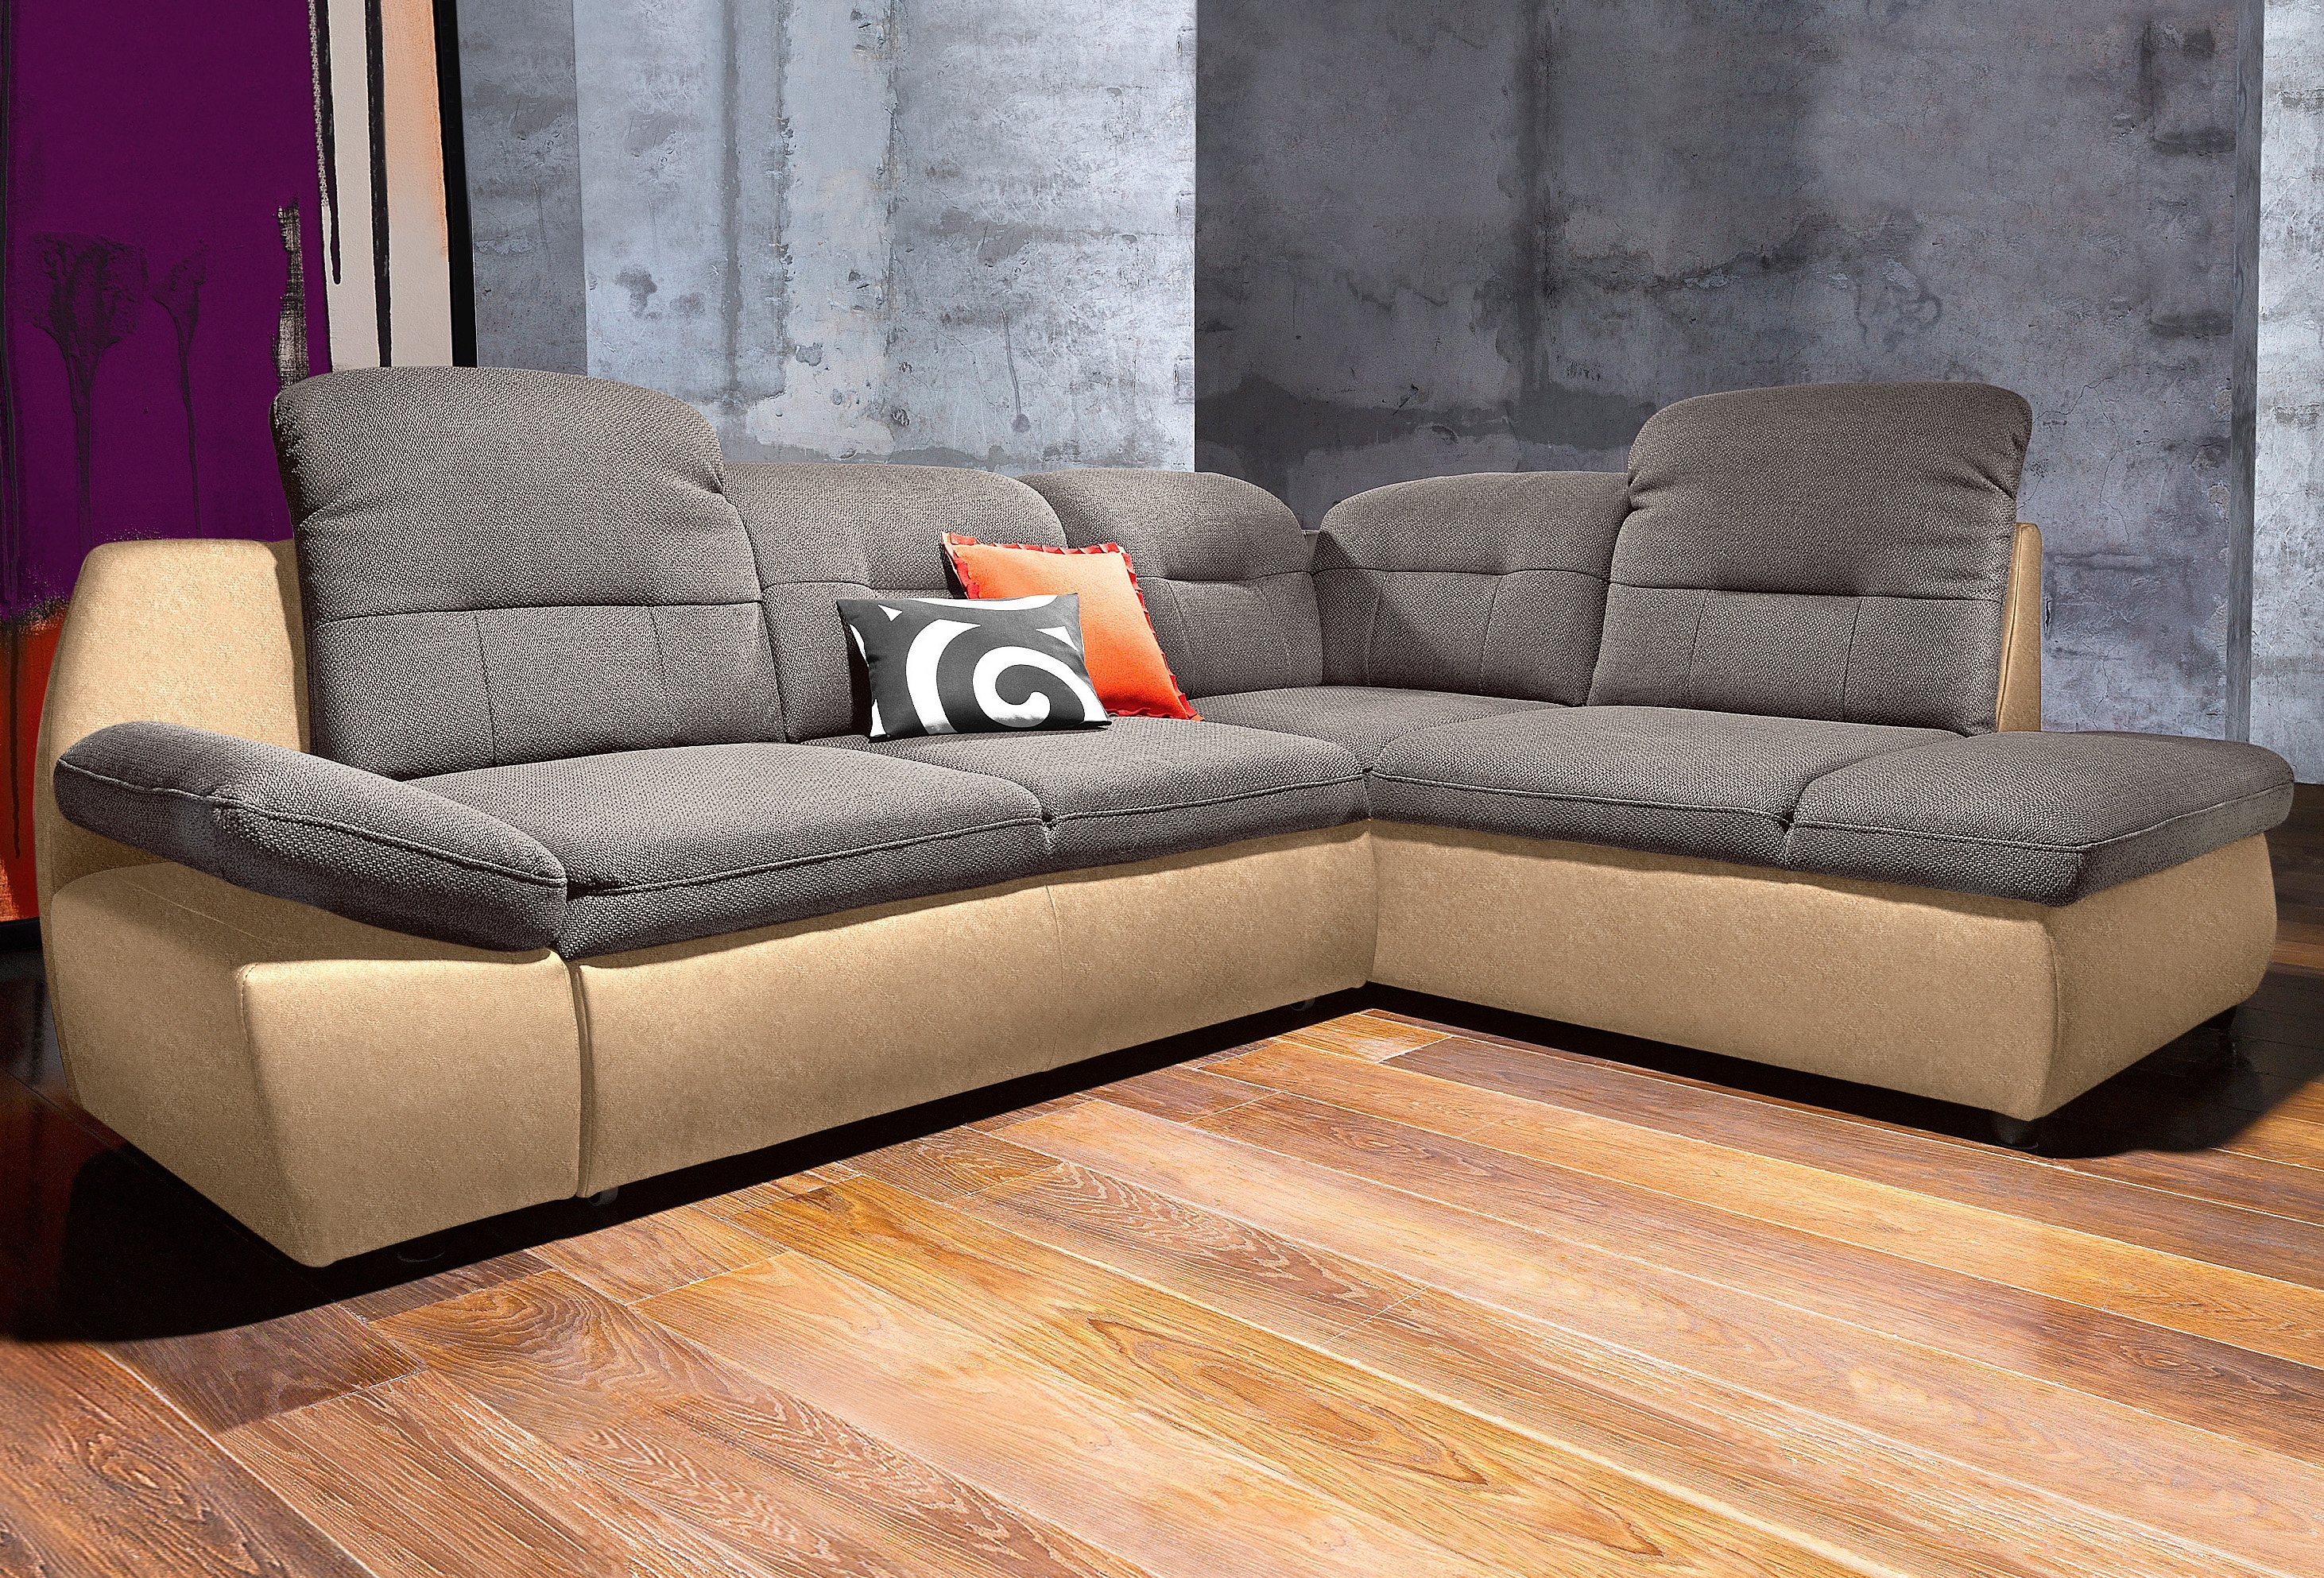 Polsterecke city sofa wahlweise mit bettfunktion natur for Couch mit bettfunktion und bettkasten